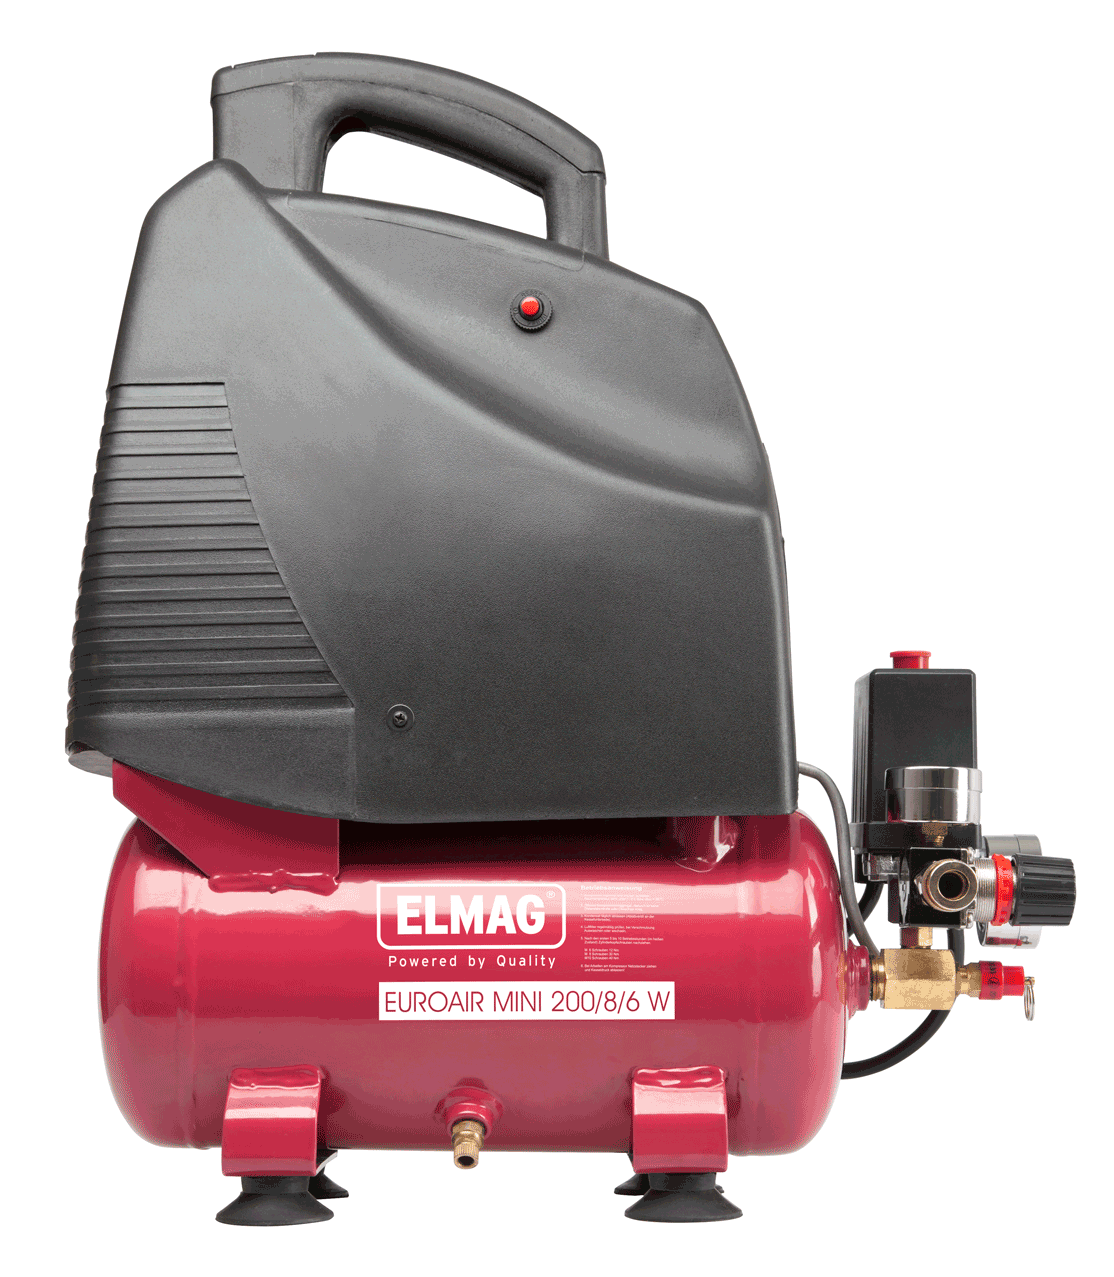 Elmag Kompressor EUROAIR MINI 200/8/6 W